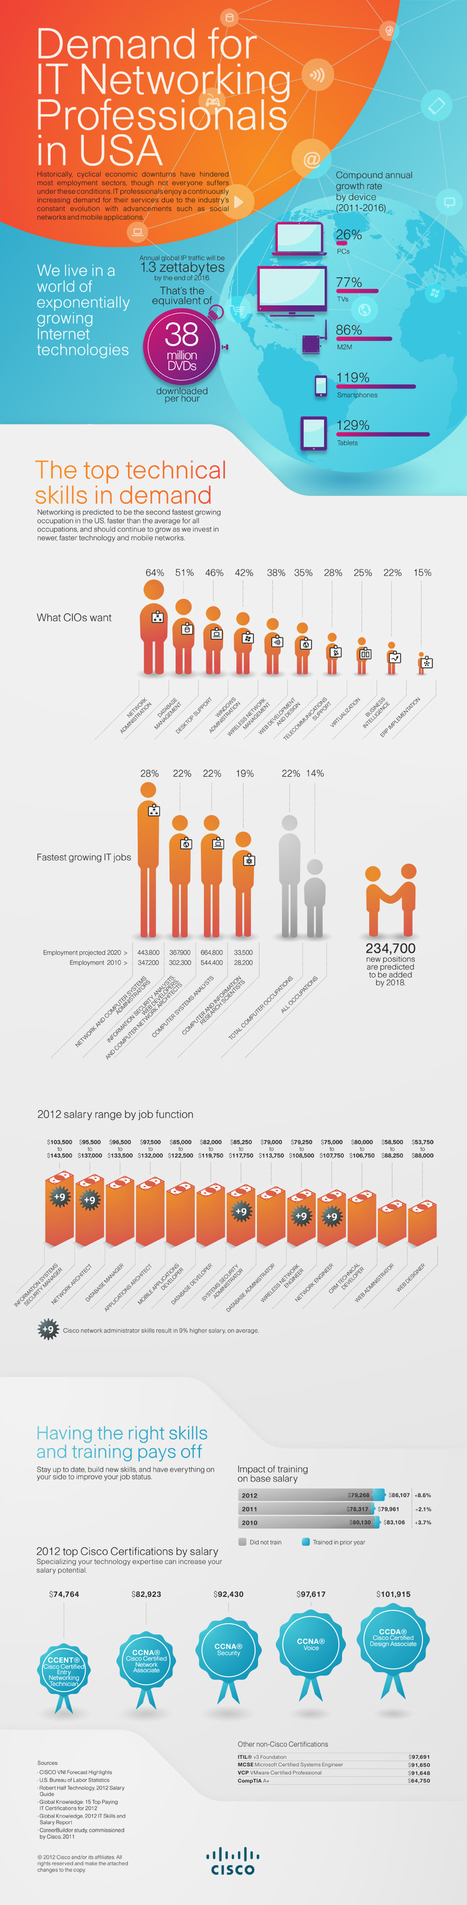 Demand for IT Networking Professionals | Visual.ly | Social Media and Web Infographics hh | Scoop.it